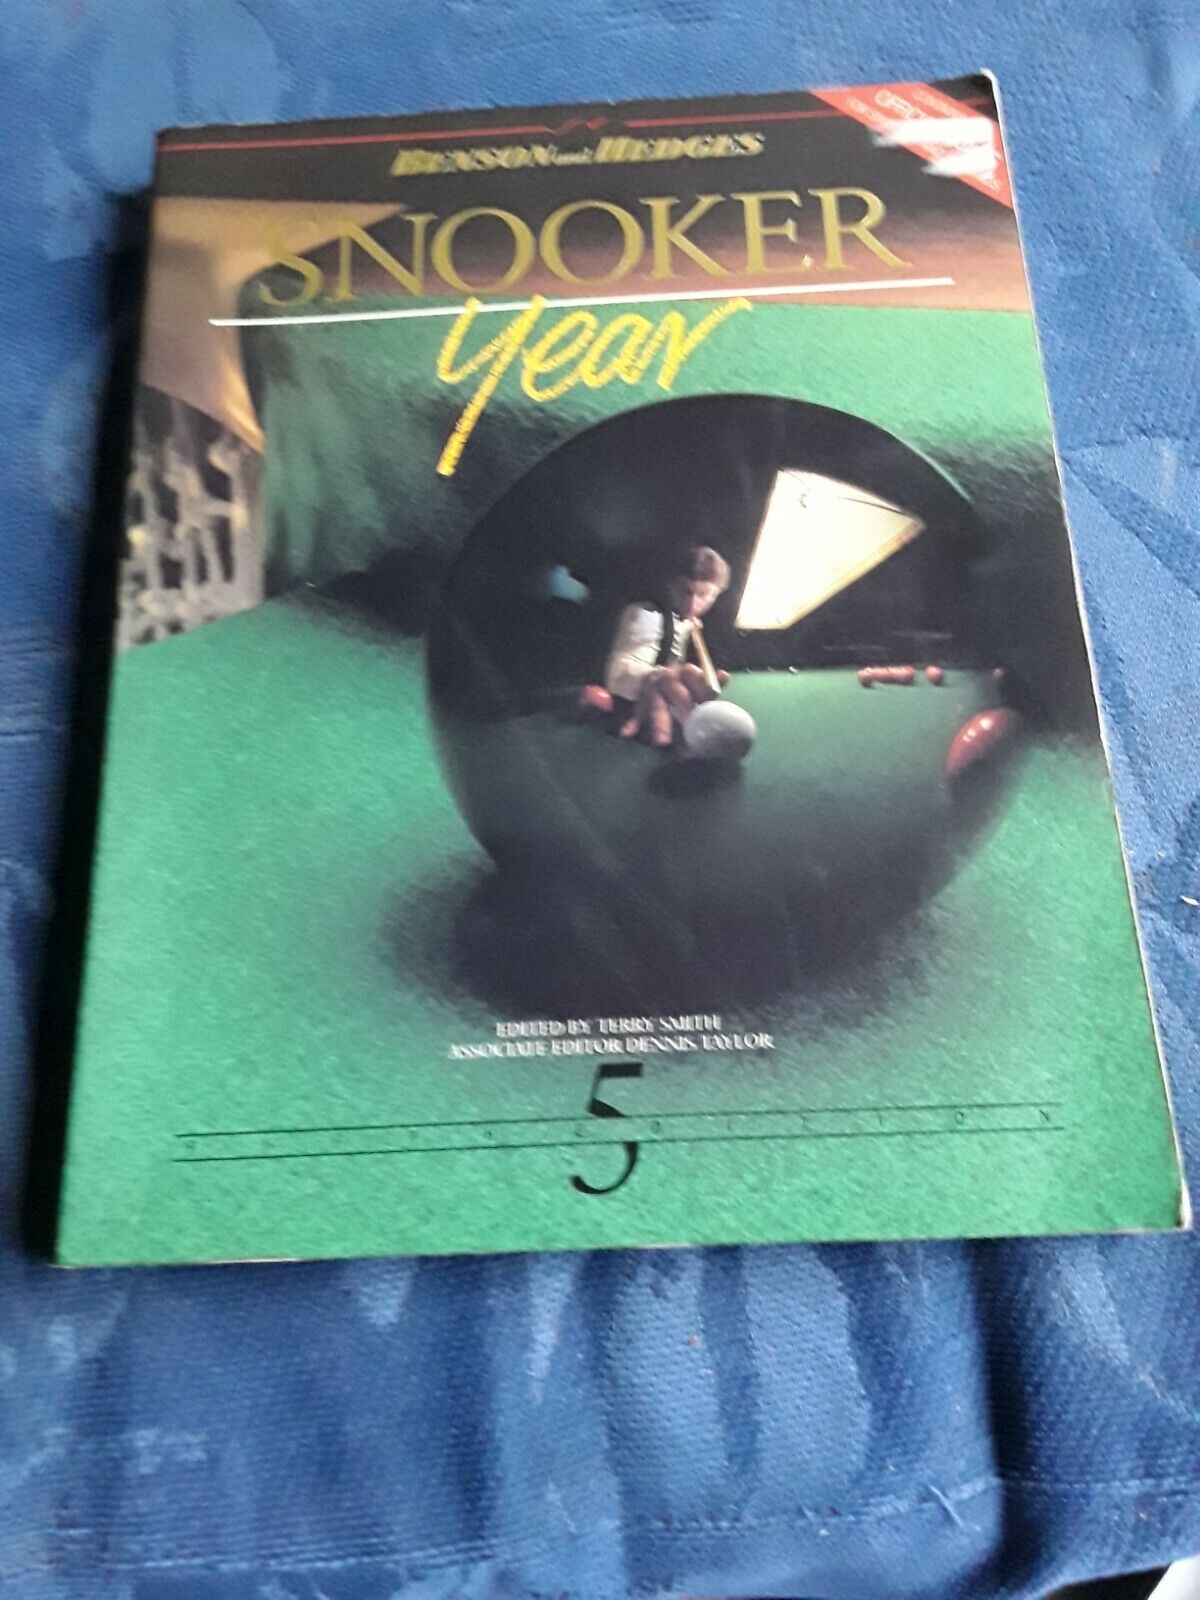 Benson and hedges snooker year book fifth edition